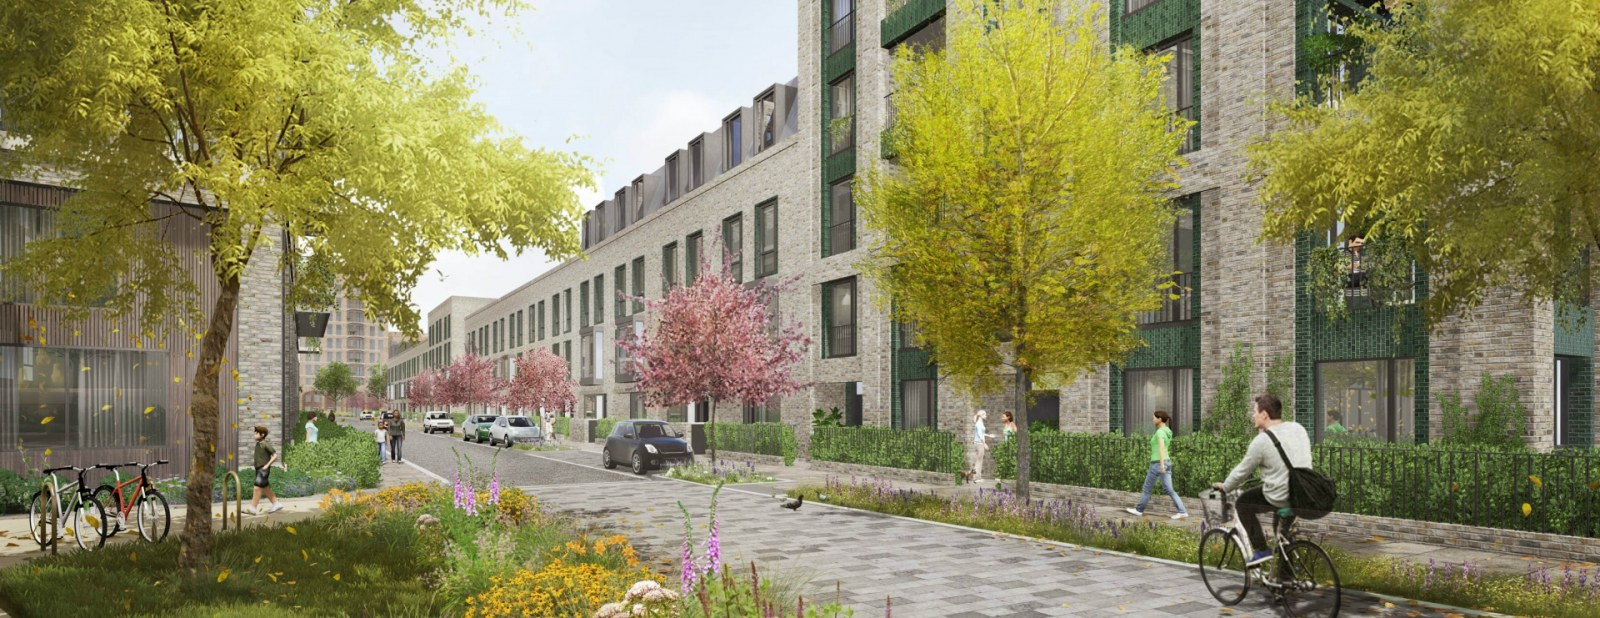 Aylesbury regeneration gets green light Picture 1